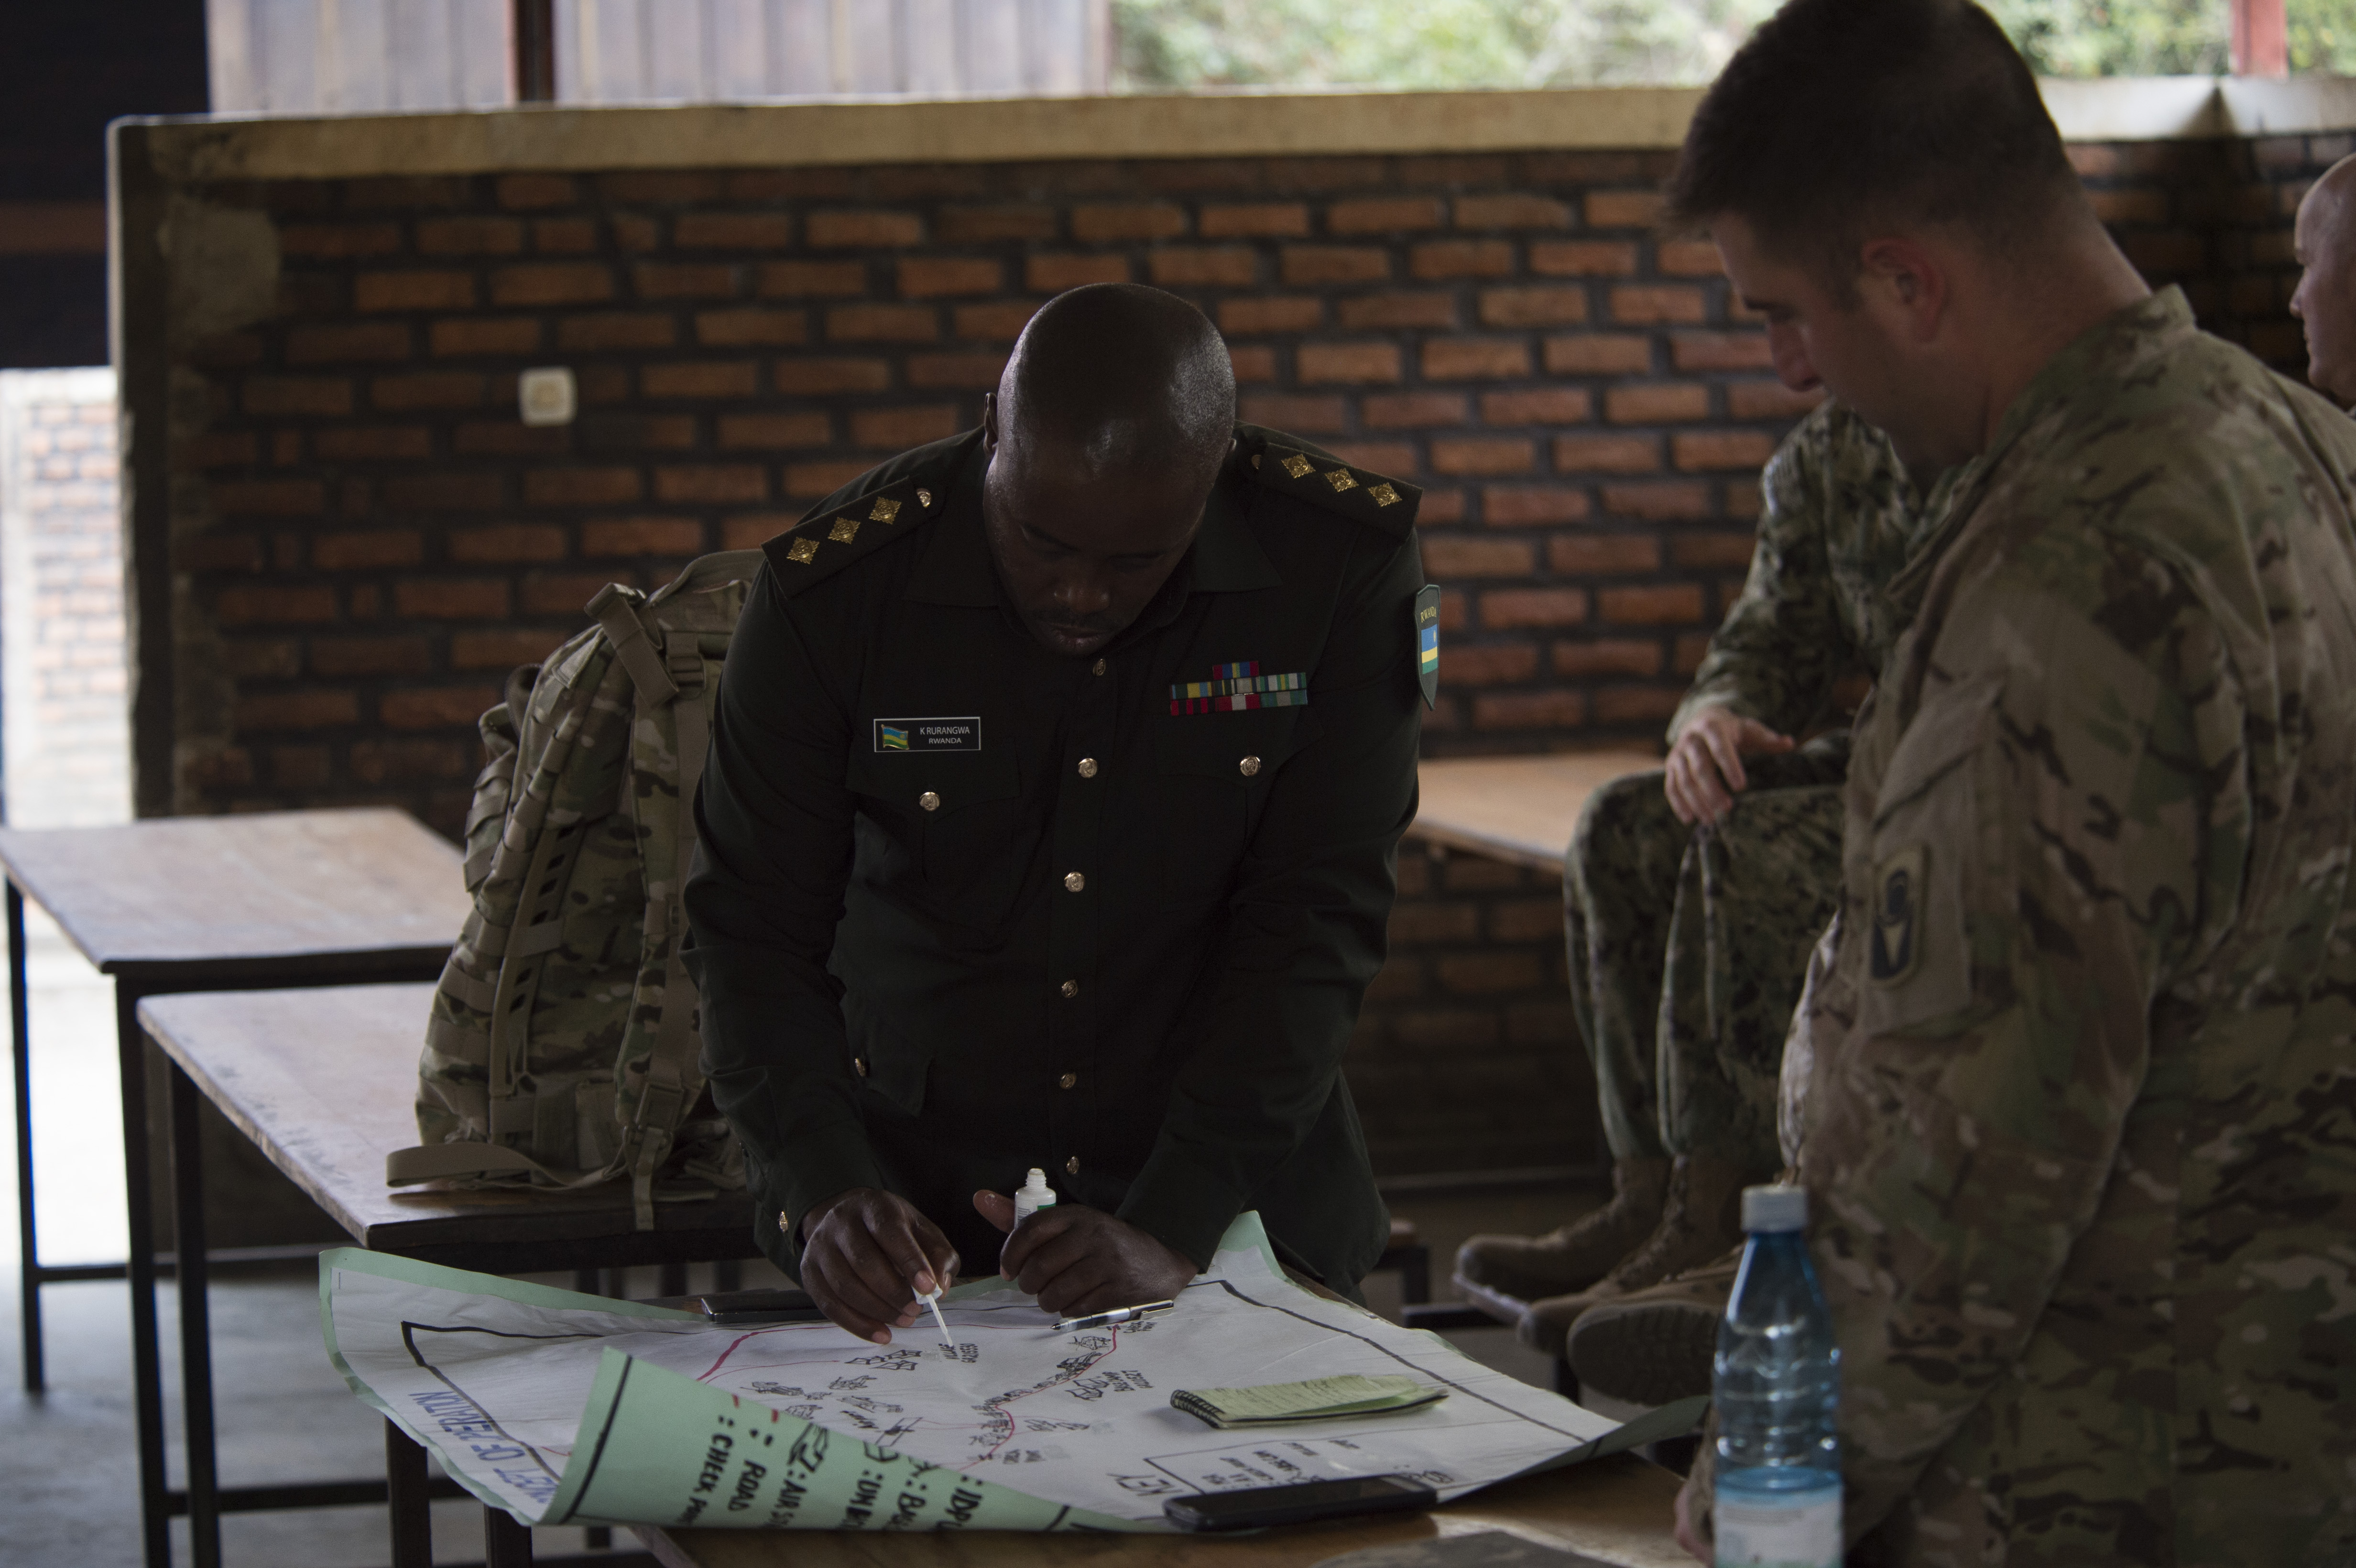 A Rwanda Defense Force captain and U.S. Army 1st Sgt. Jason Krenta, 1st Battalion, 124th Infantry Regiment, review and make changes to a map in preparation for practical land navigation training Sept. 8, 2016, at the Rwanda Military Academy, Rwanda. Krenta, deployed to Combined Joint Task Force - Horn of Africa from the Florida Army National Guard, was part of a two-man team to observe and provide advice during a Rwandan NCO leadership course. (U.S. Air Force photo by Staff Sgt. Eric Summers Jr.)